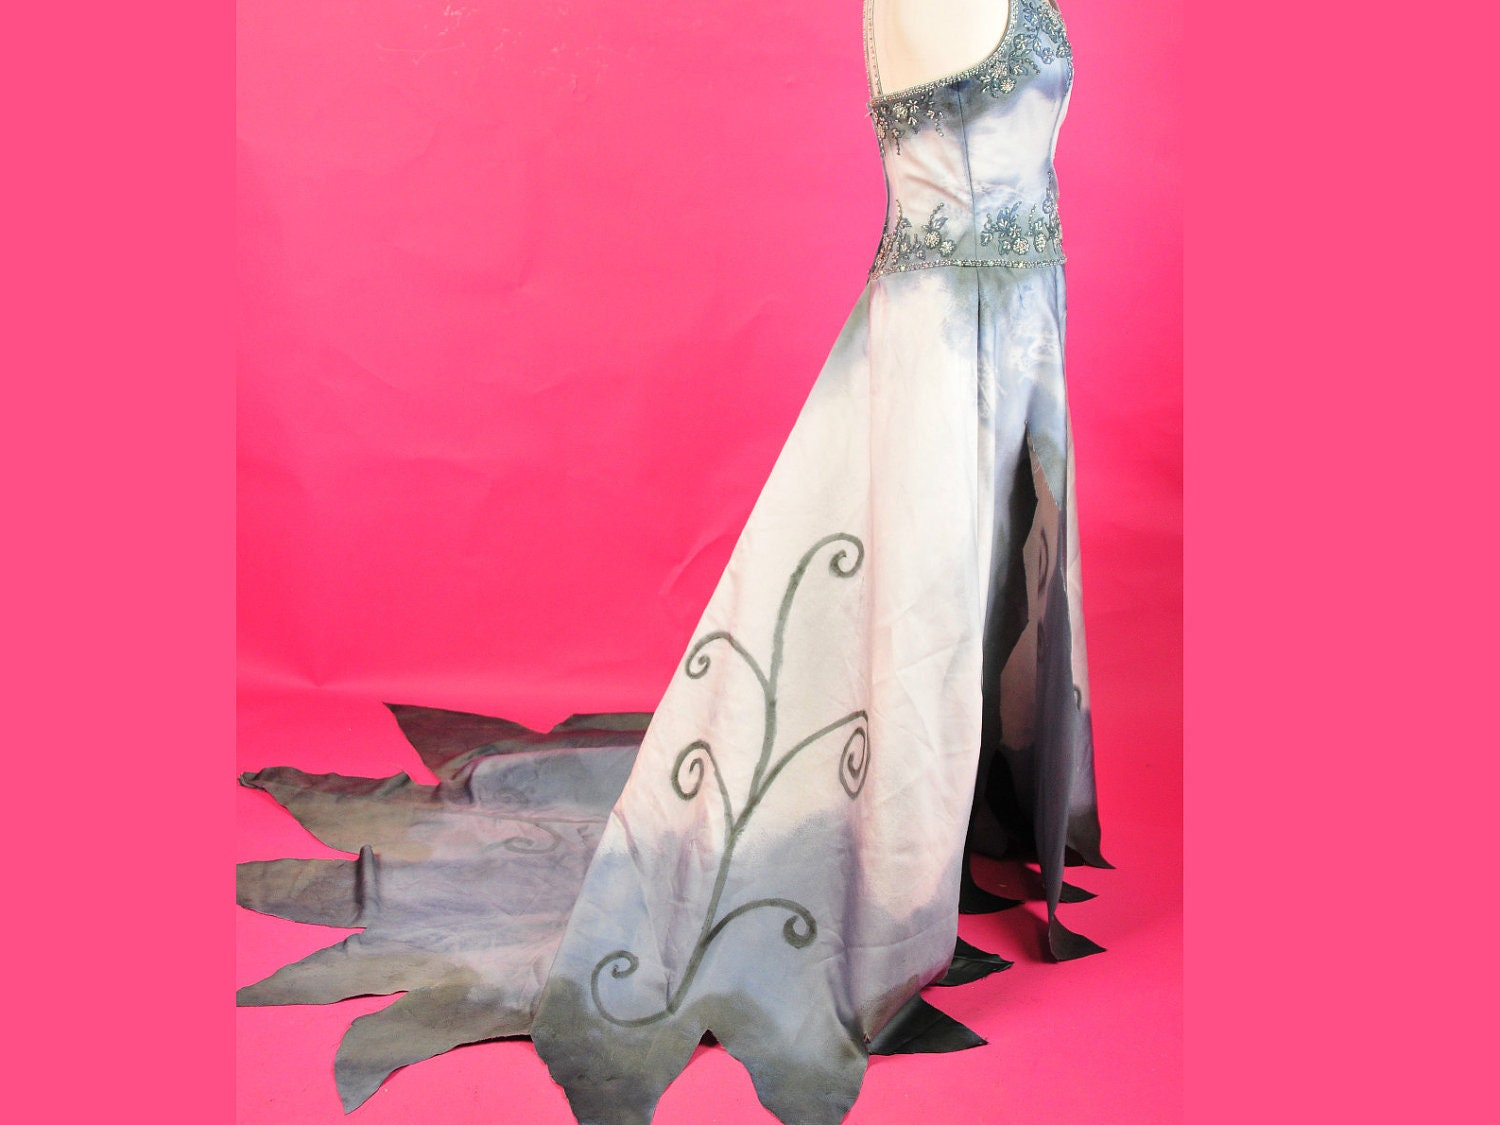 Corpse Bride Wedding Gown: Corpse Bride Dress Gown Halloween Wedding Zombie By